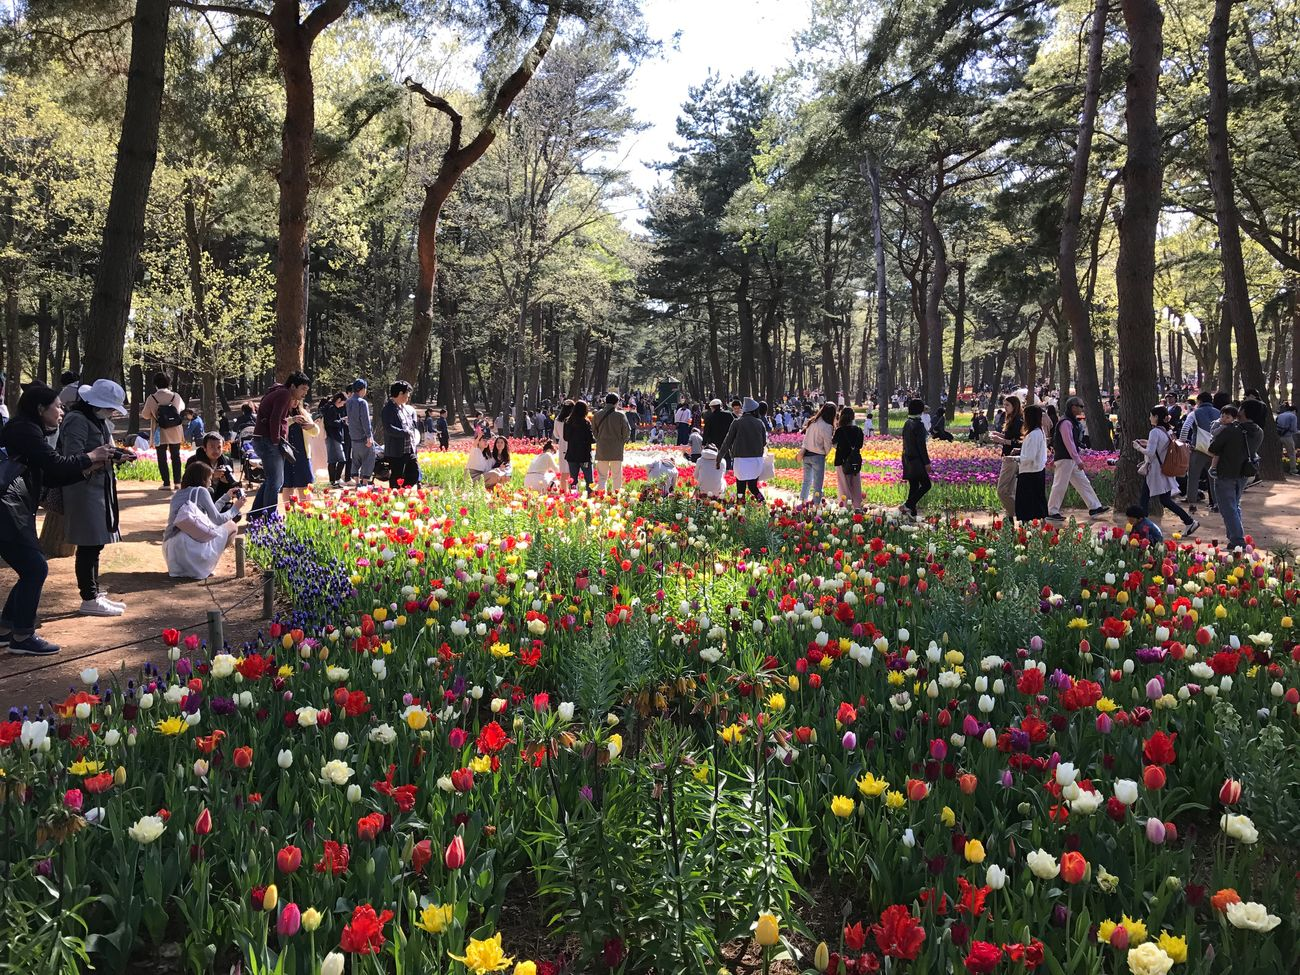 HitachiSeaSidePark Large Group Of People Tree Nature Flower Growth Beauty In Nature Outdoors Real People Tree Trunk Day Men Park - Man Made Space Plant Fragility Freshness Crowd People Adult